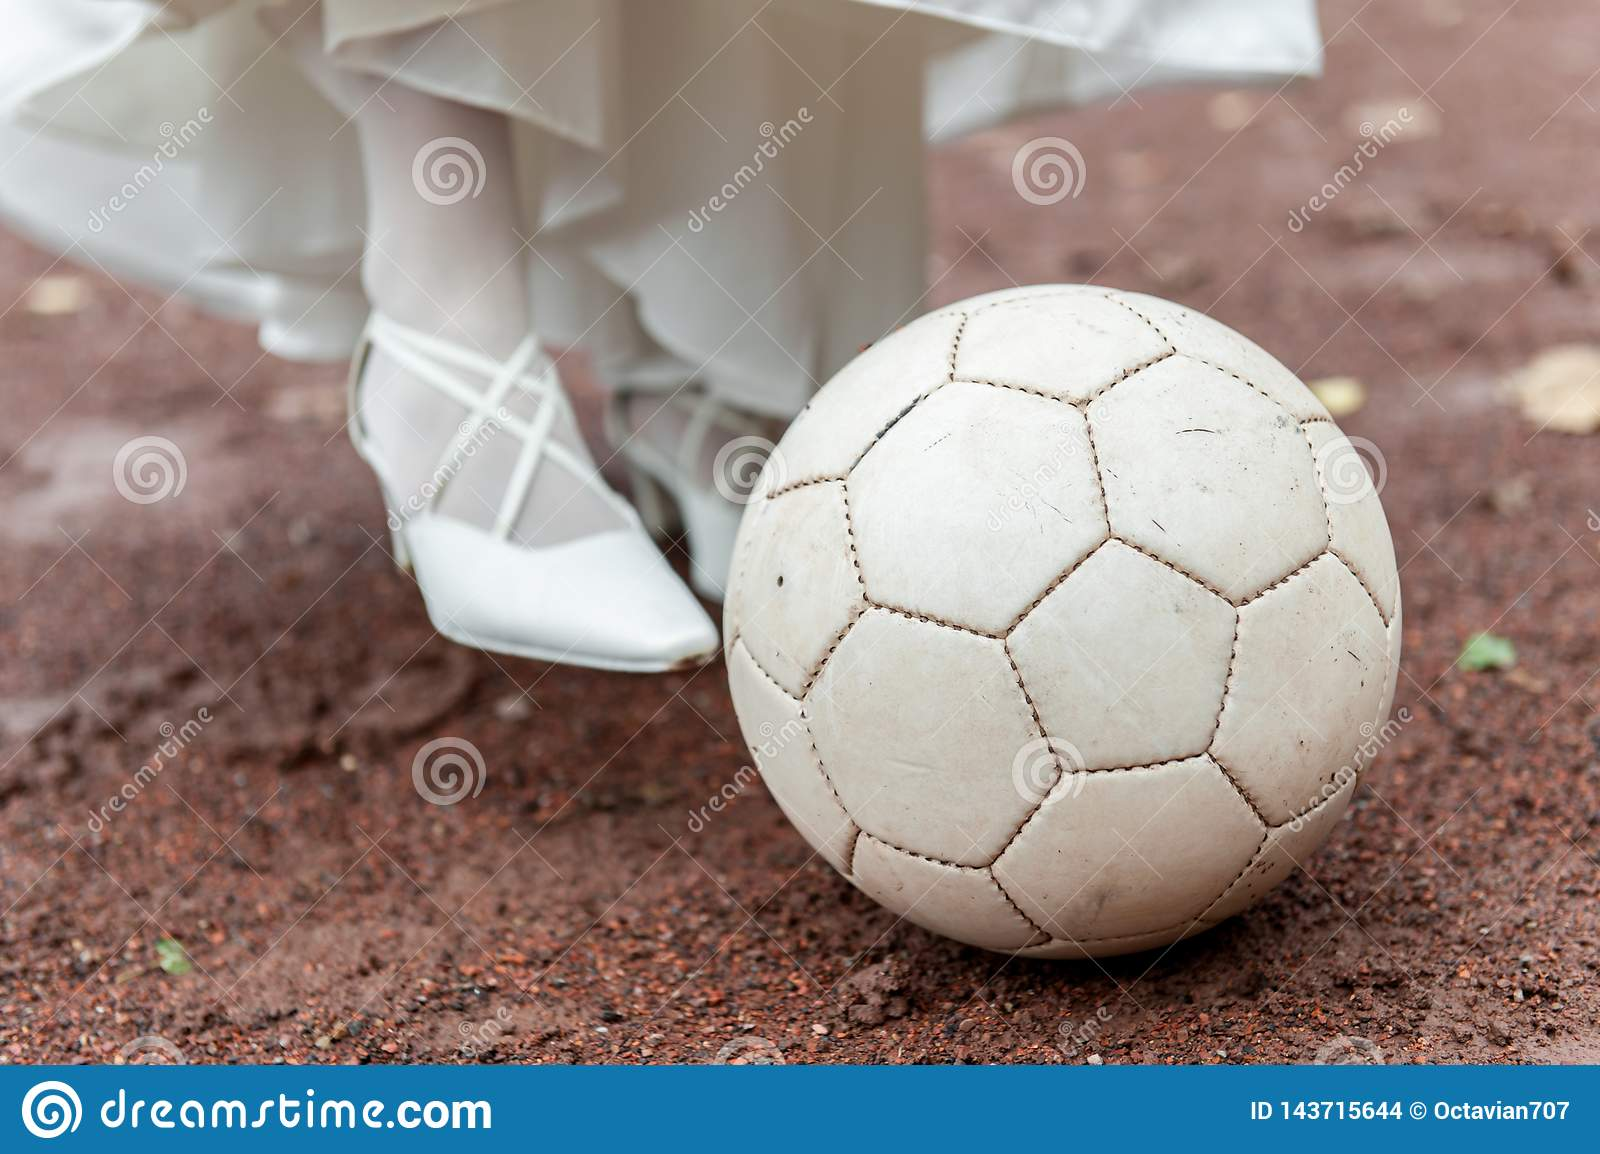 Bride playing soccer with ball